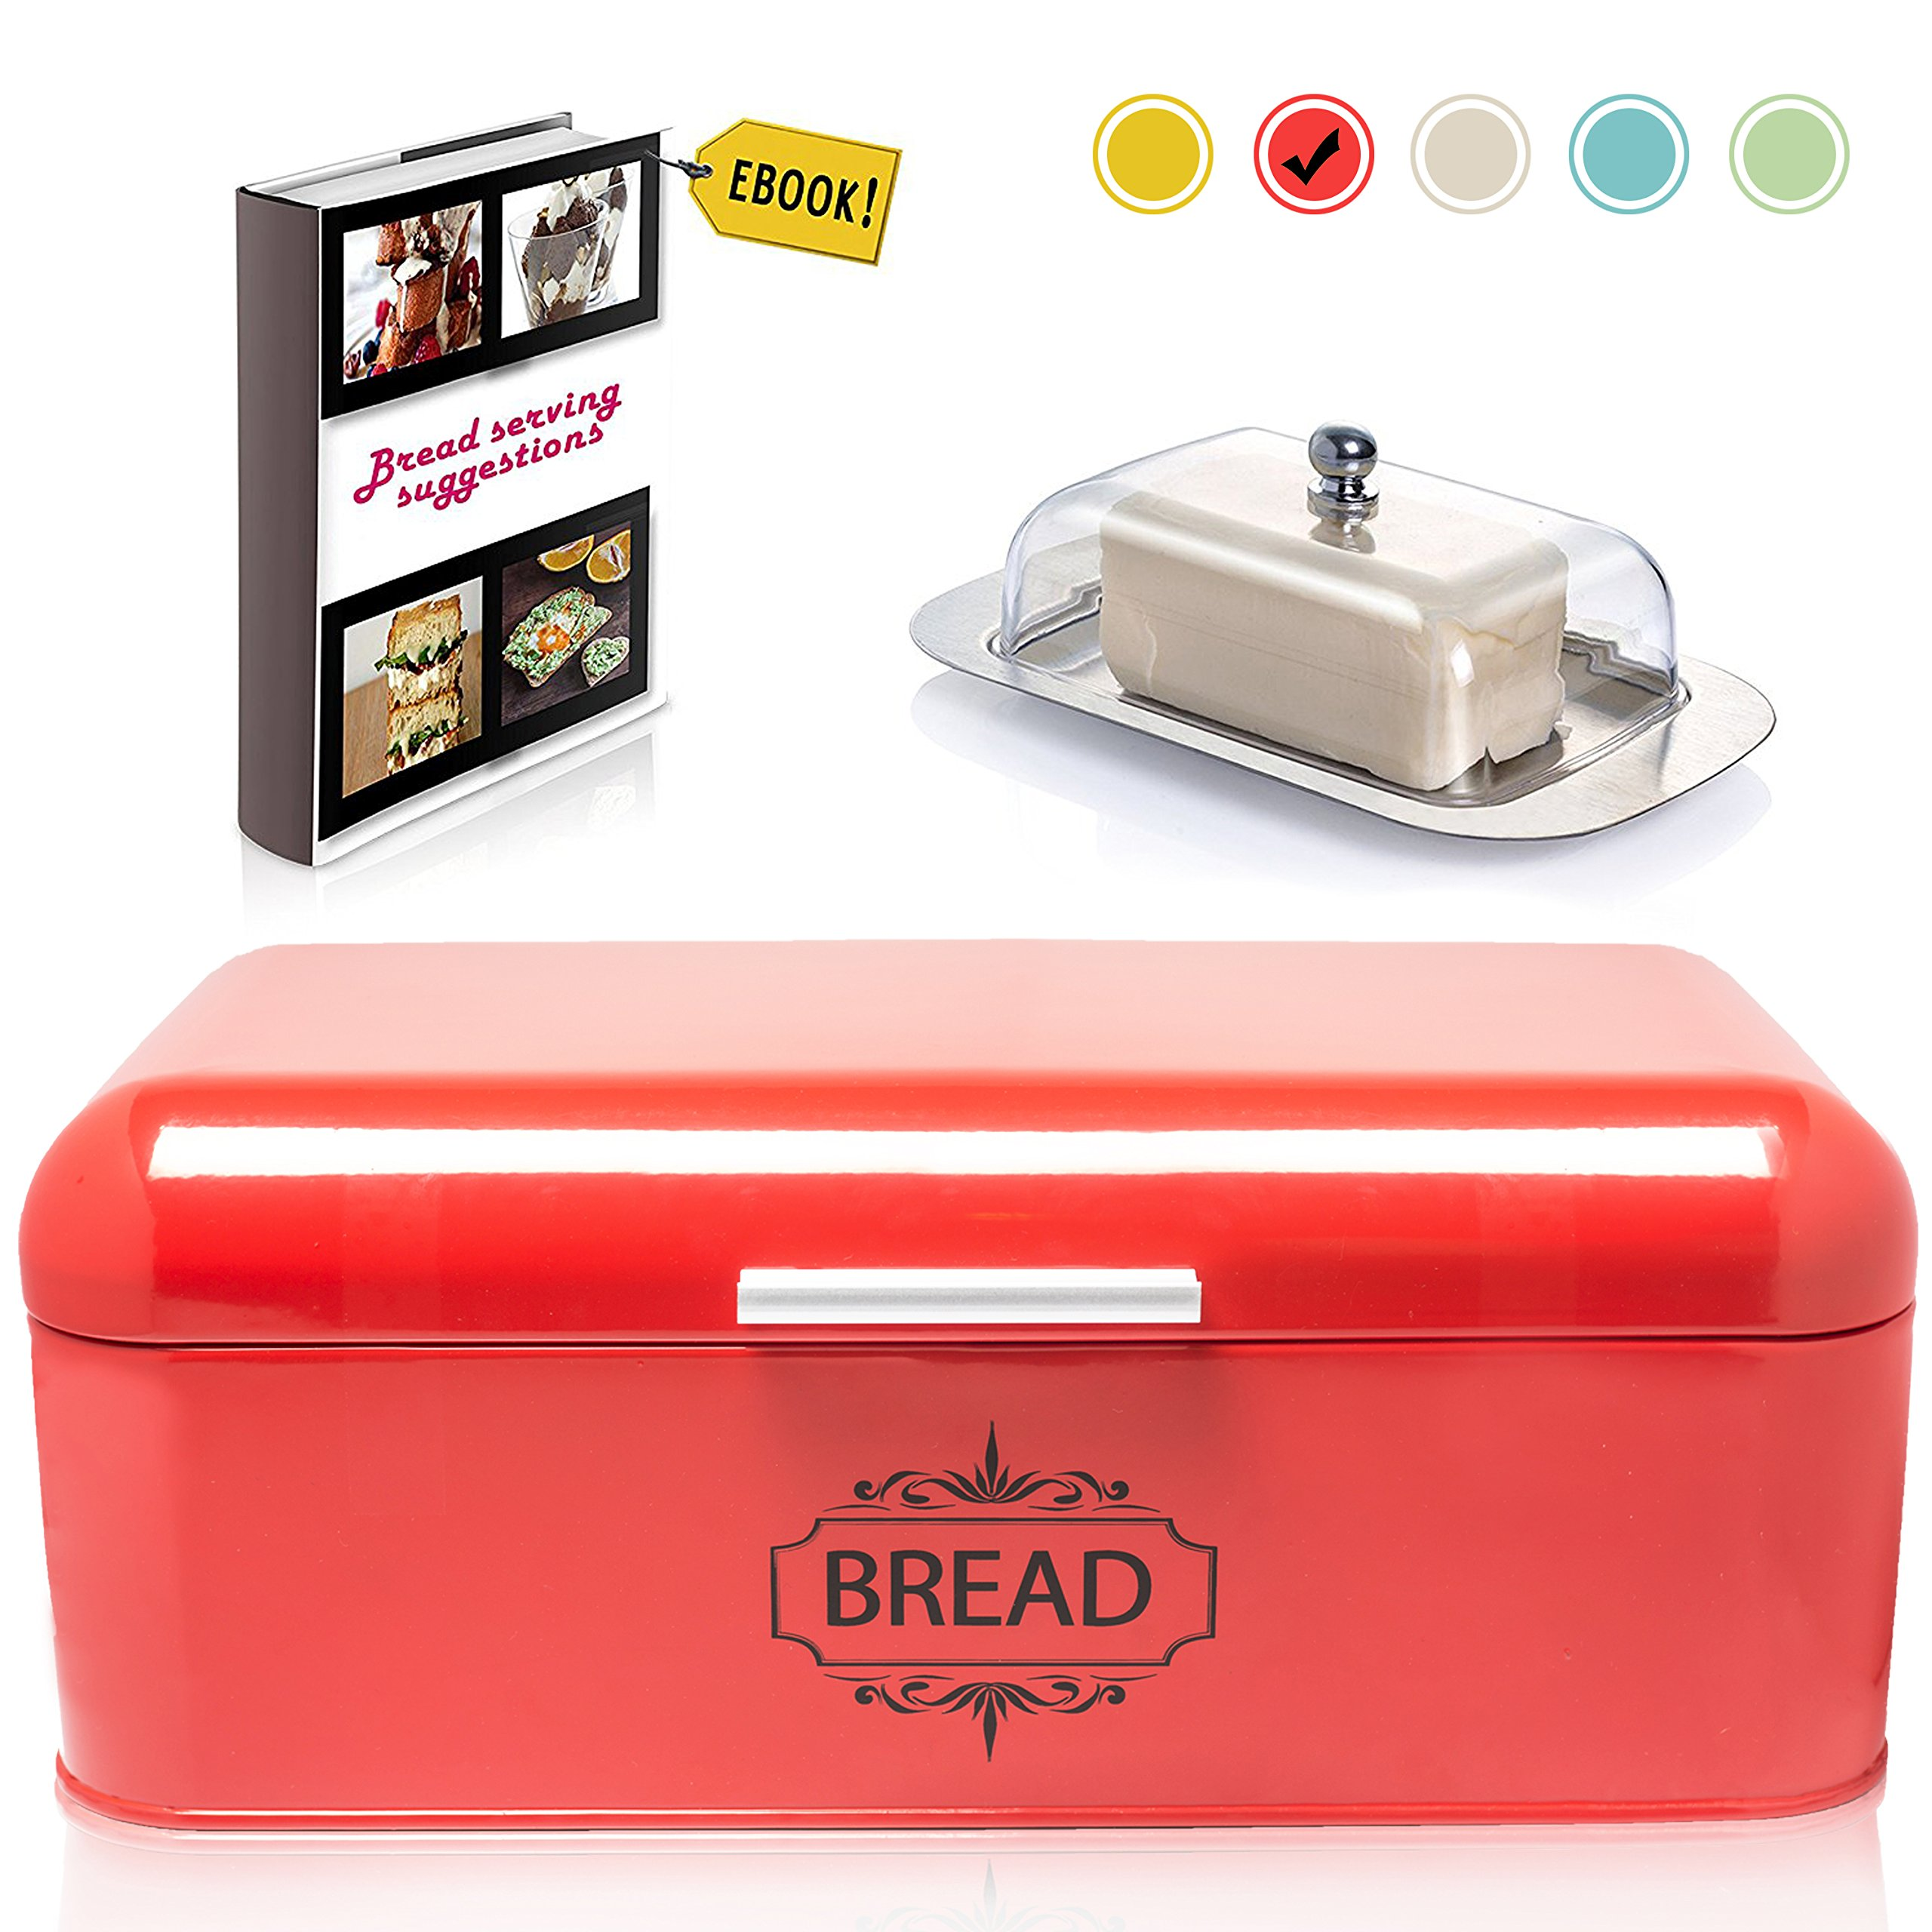 Vintage Bread Box For Kitchen Stainless Steel Metal in Retro Red + FREE Butter Dish + FREE Bread Serving Suggestions eBook 16.5'' x 9'' x 6.5'' Large Bread Bin storage by All-Green Products